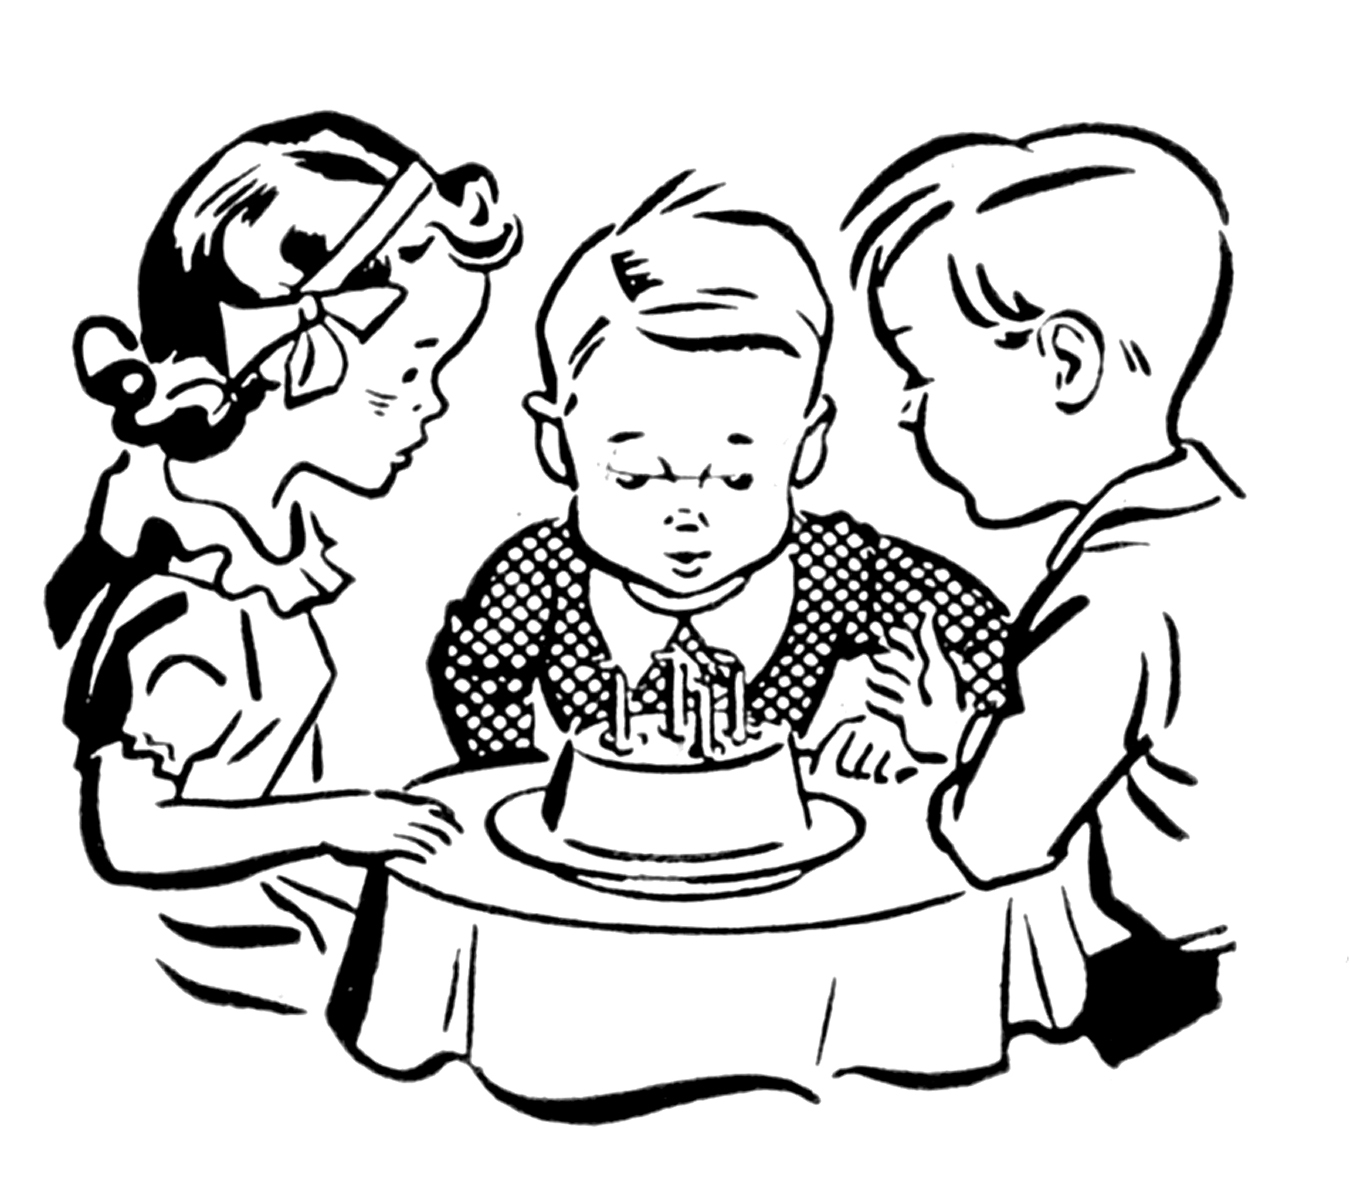 Birthday black and white first birthday clipart black and white